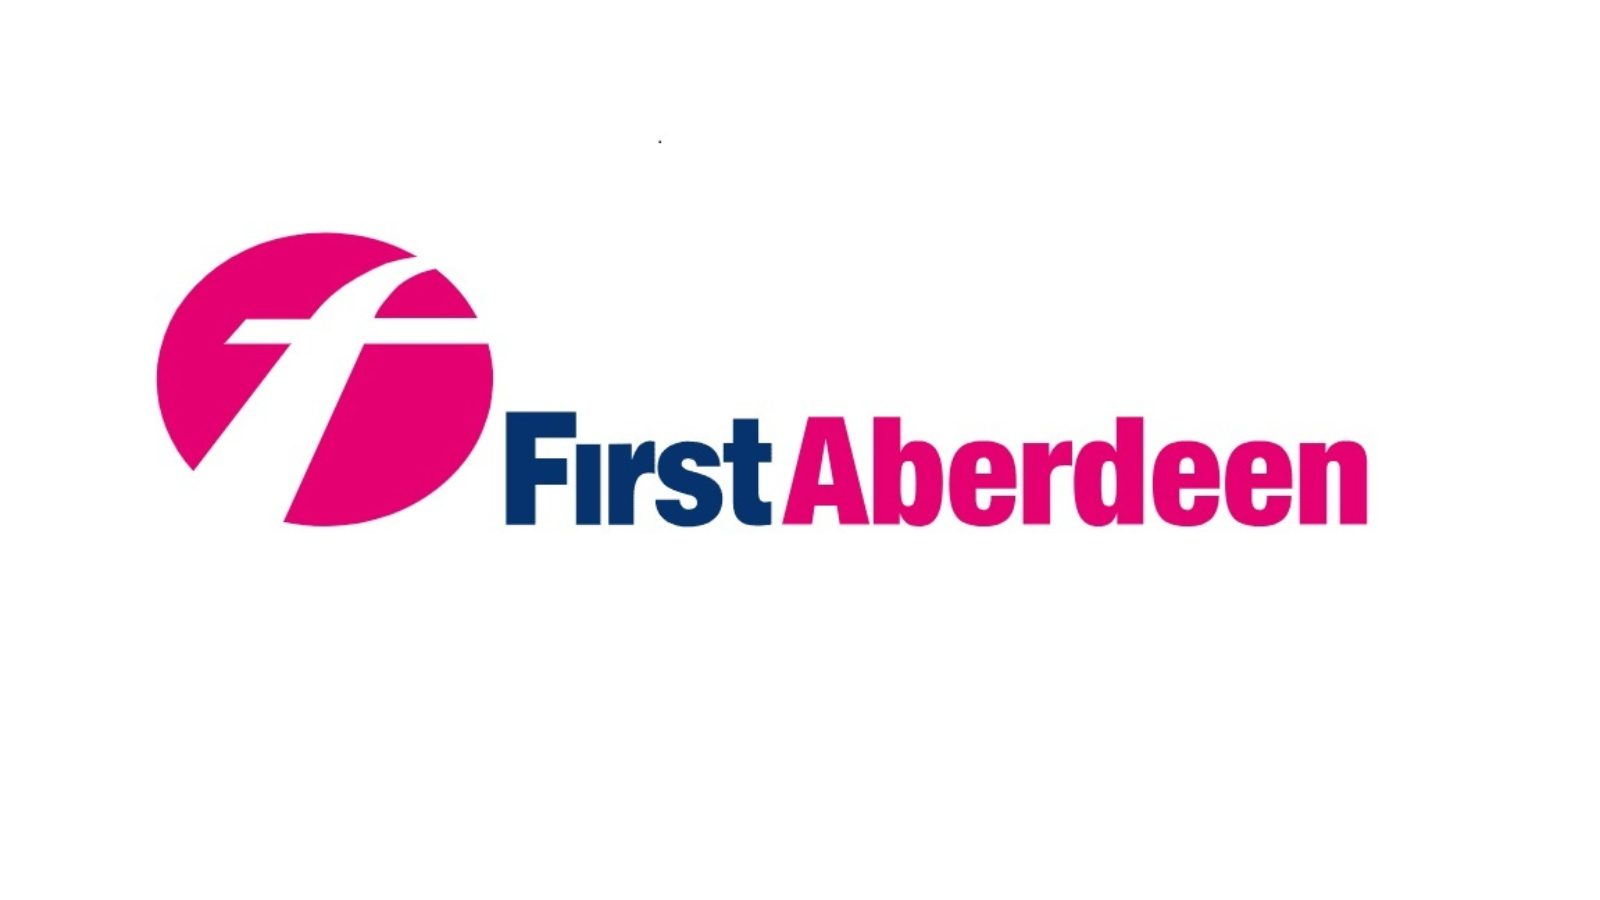 Disability Equality Scotland praises new app function that allows wheelchair users to track accessible spaces on first buses